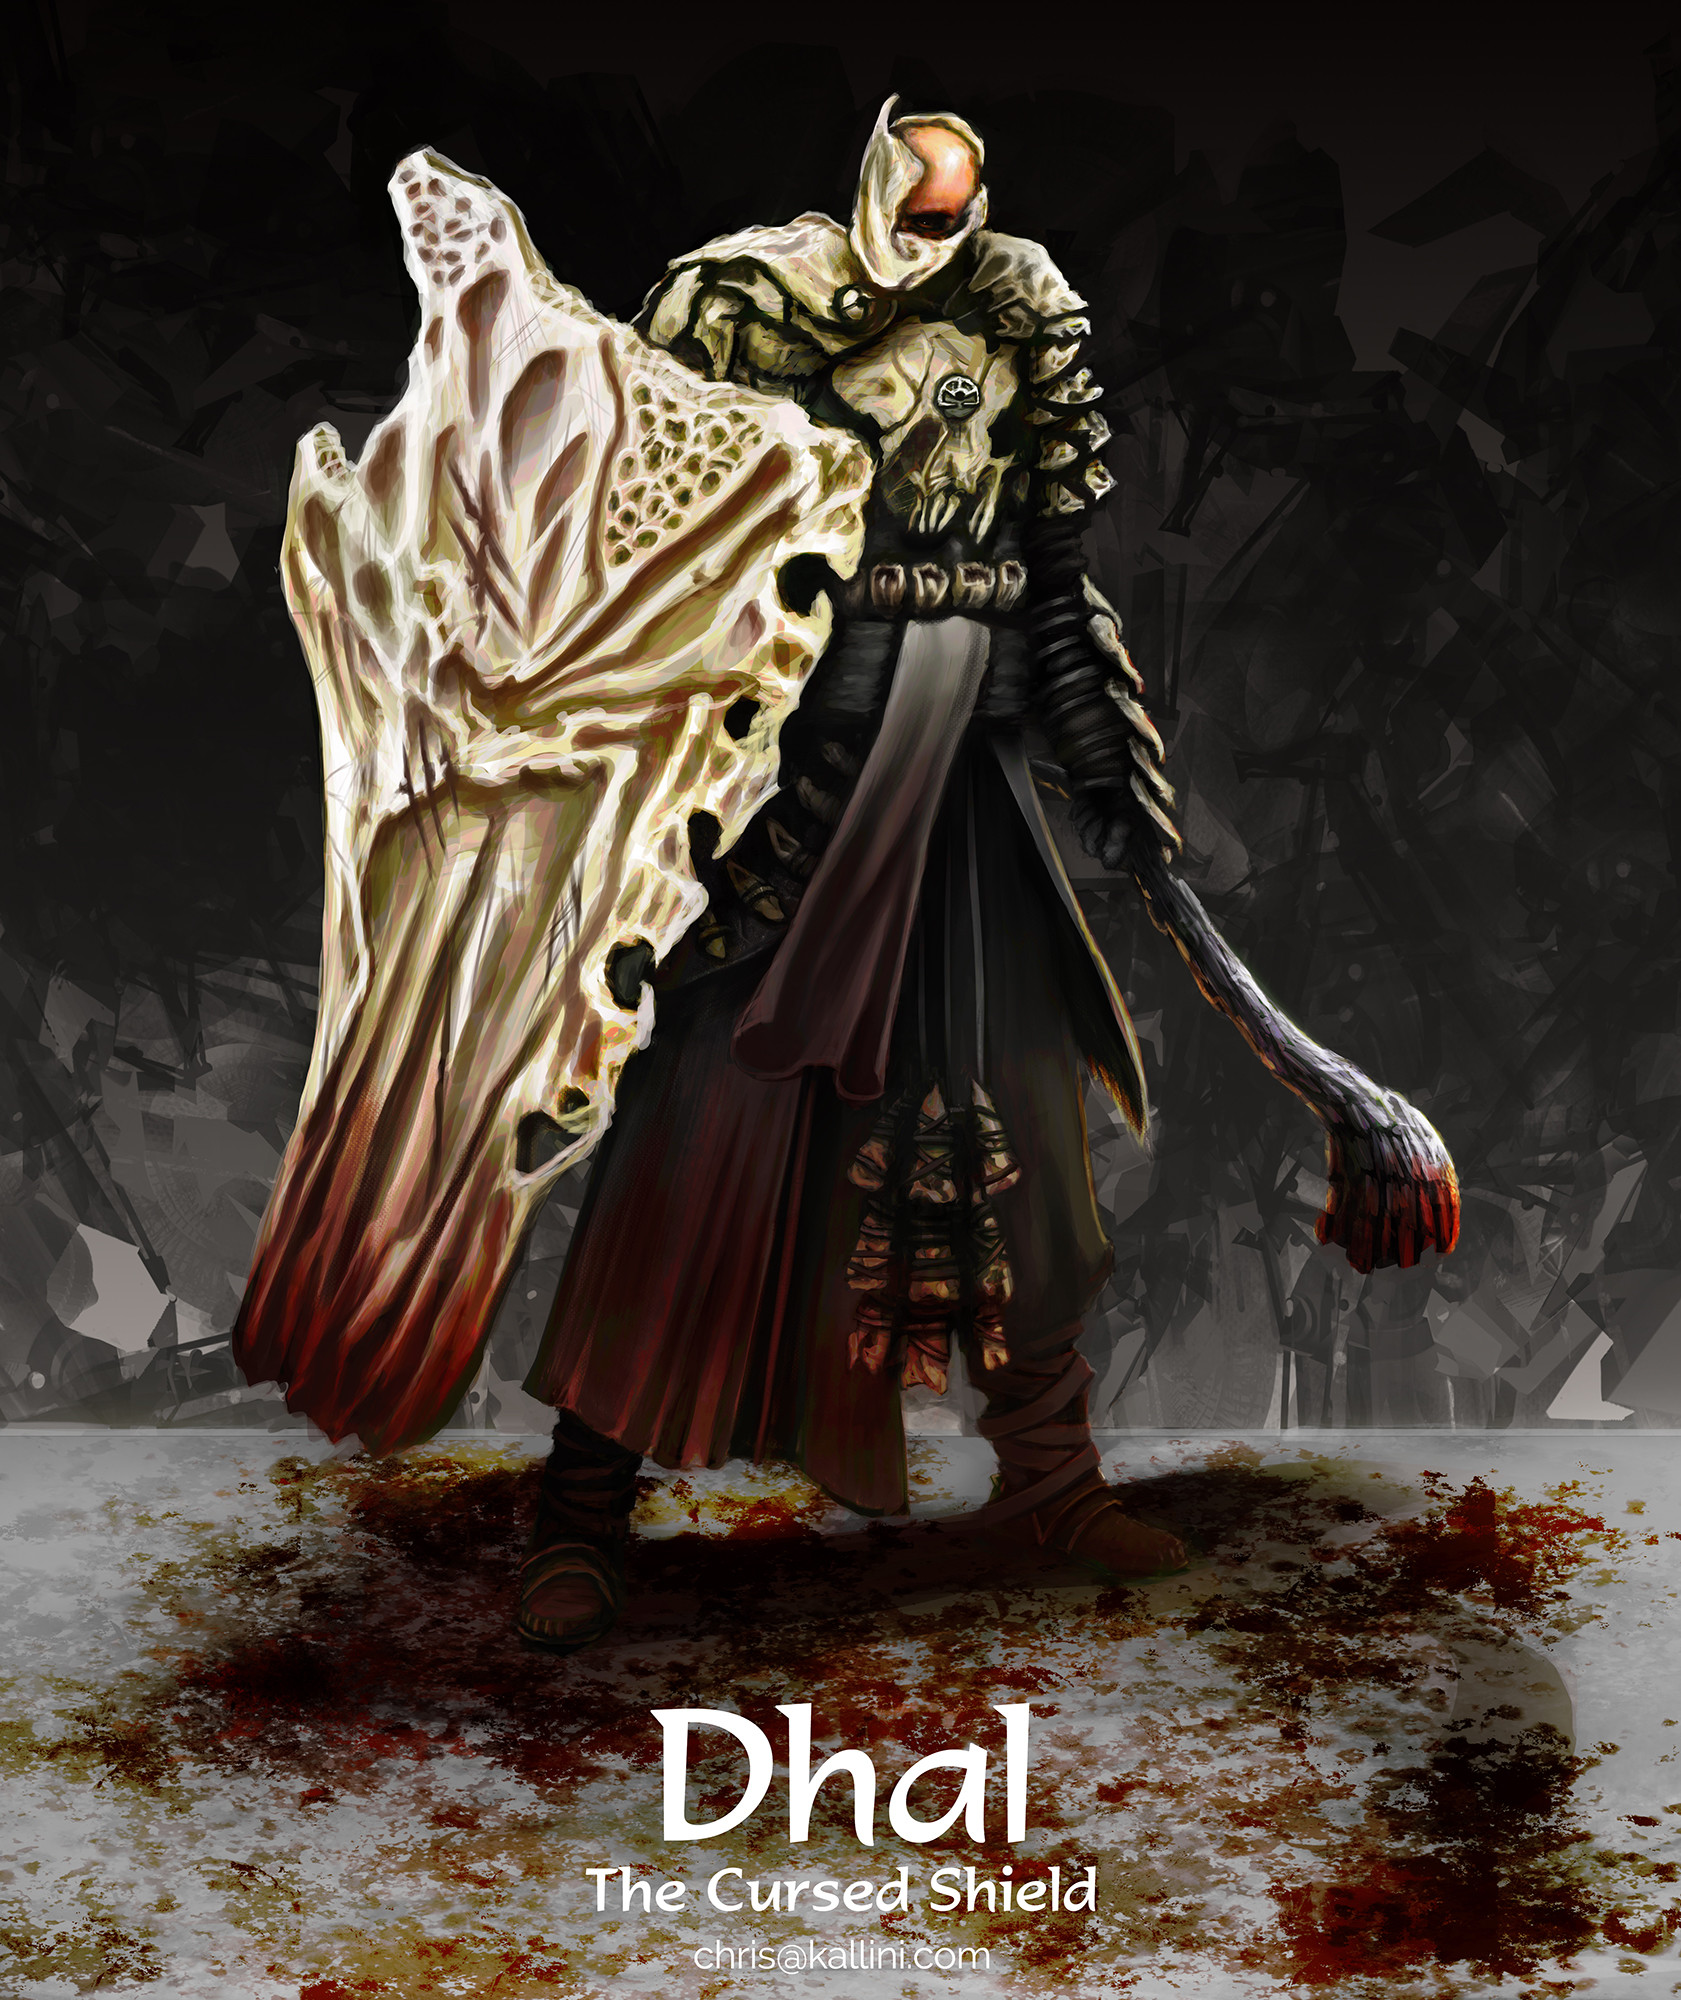 Dhal, the Cursed Shield